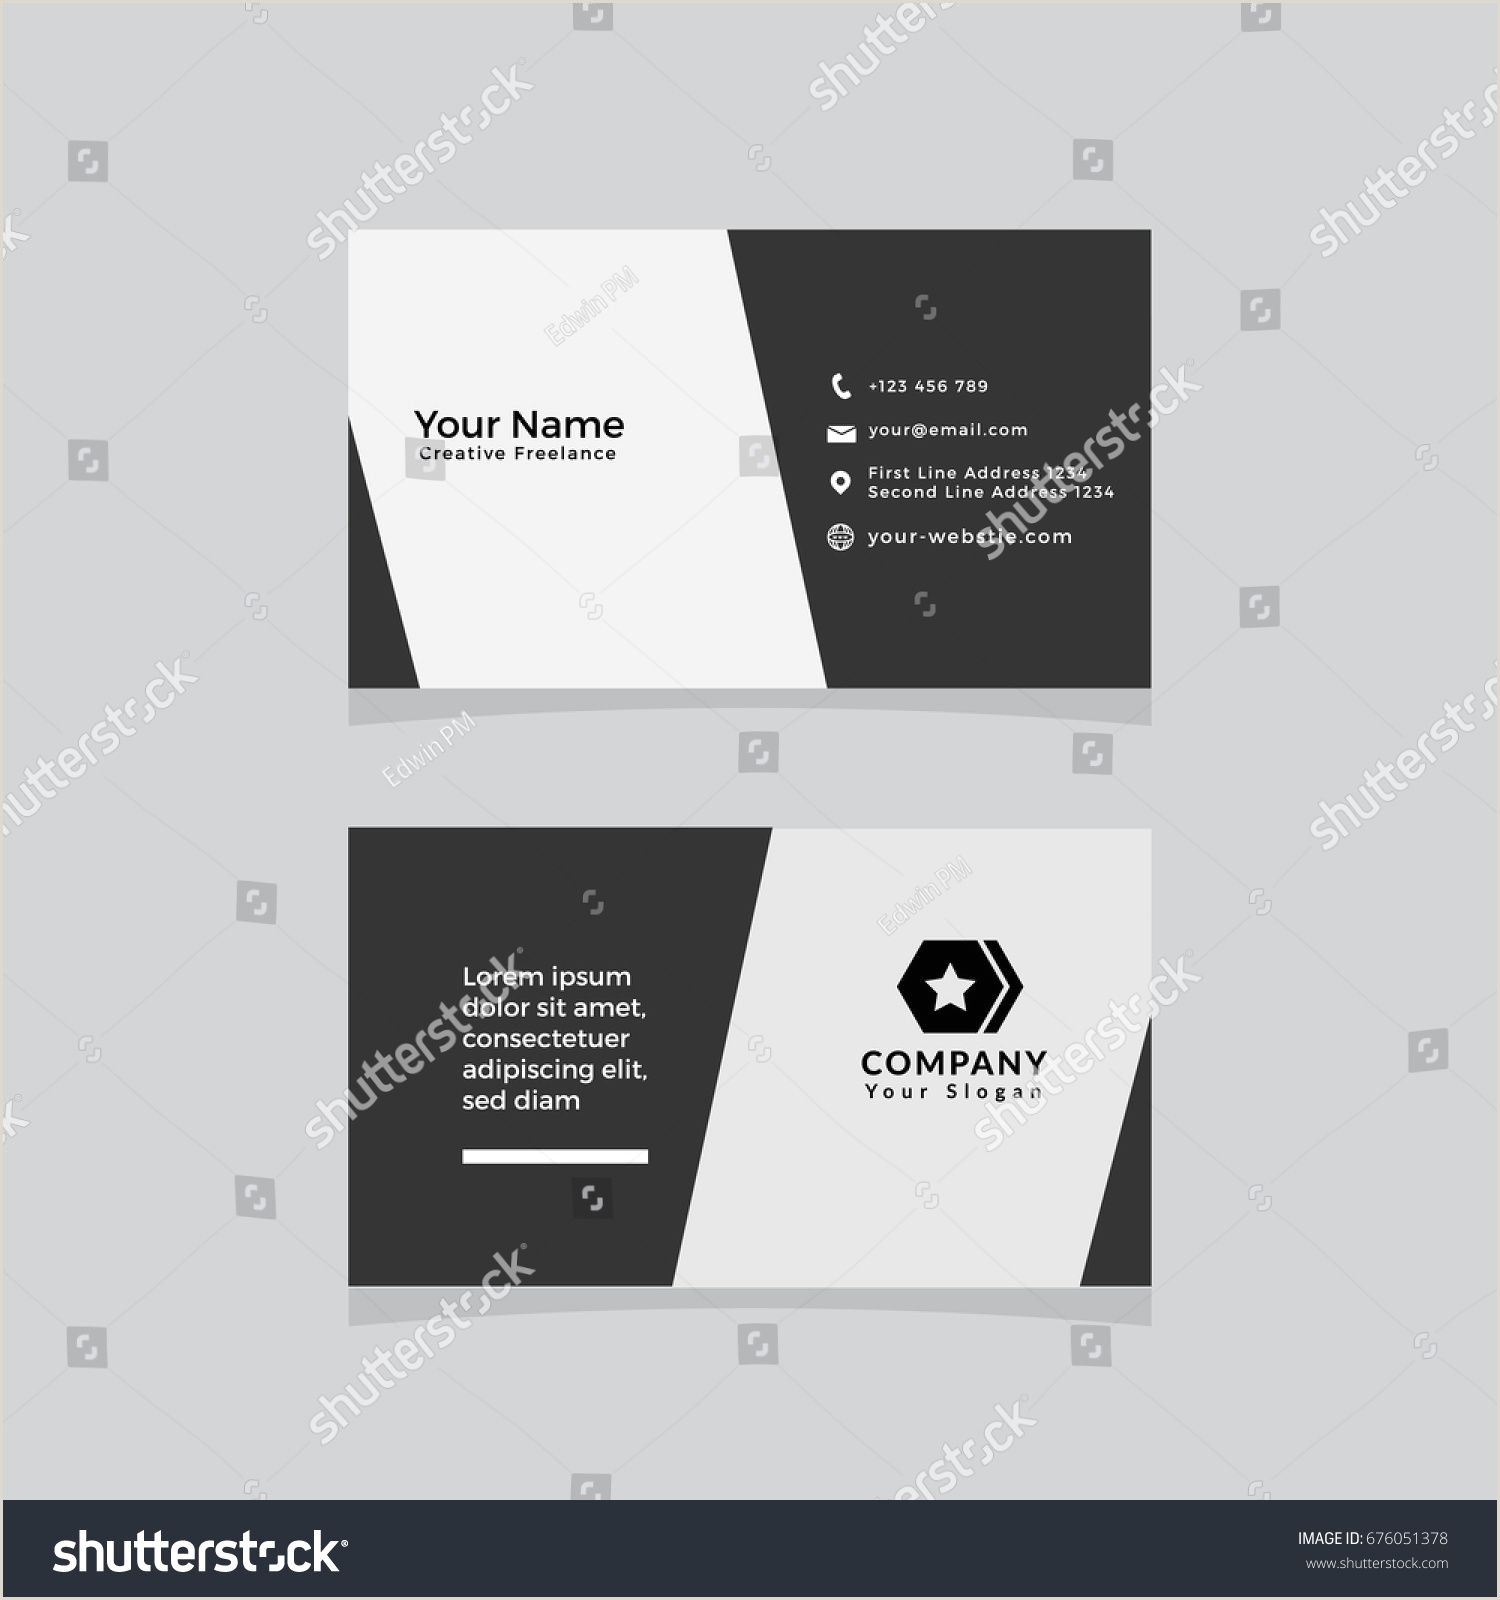 Visting Card Template Double Sided Business Card Template Flat Design Vector